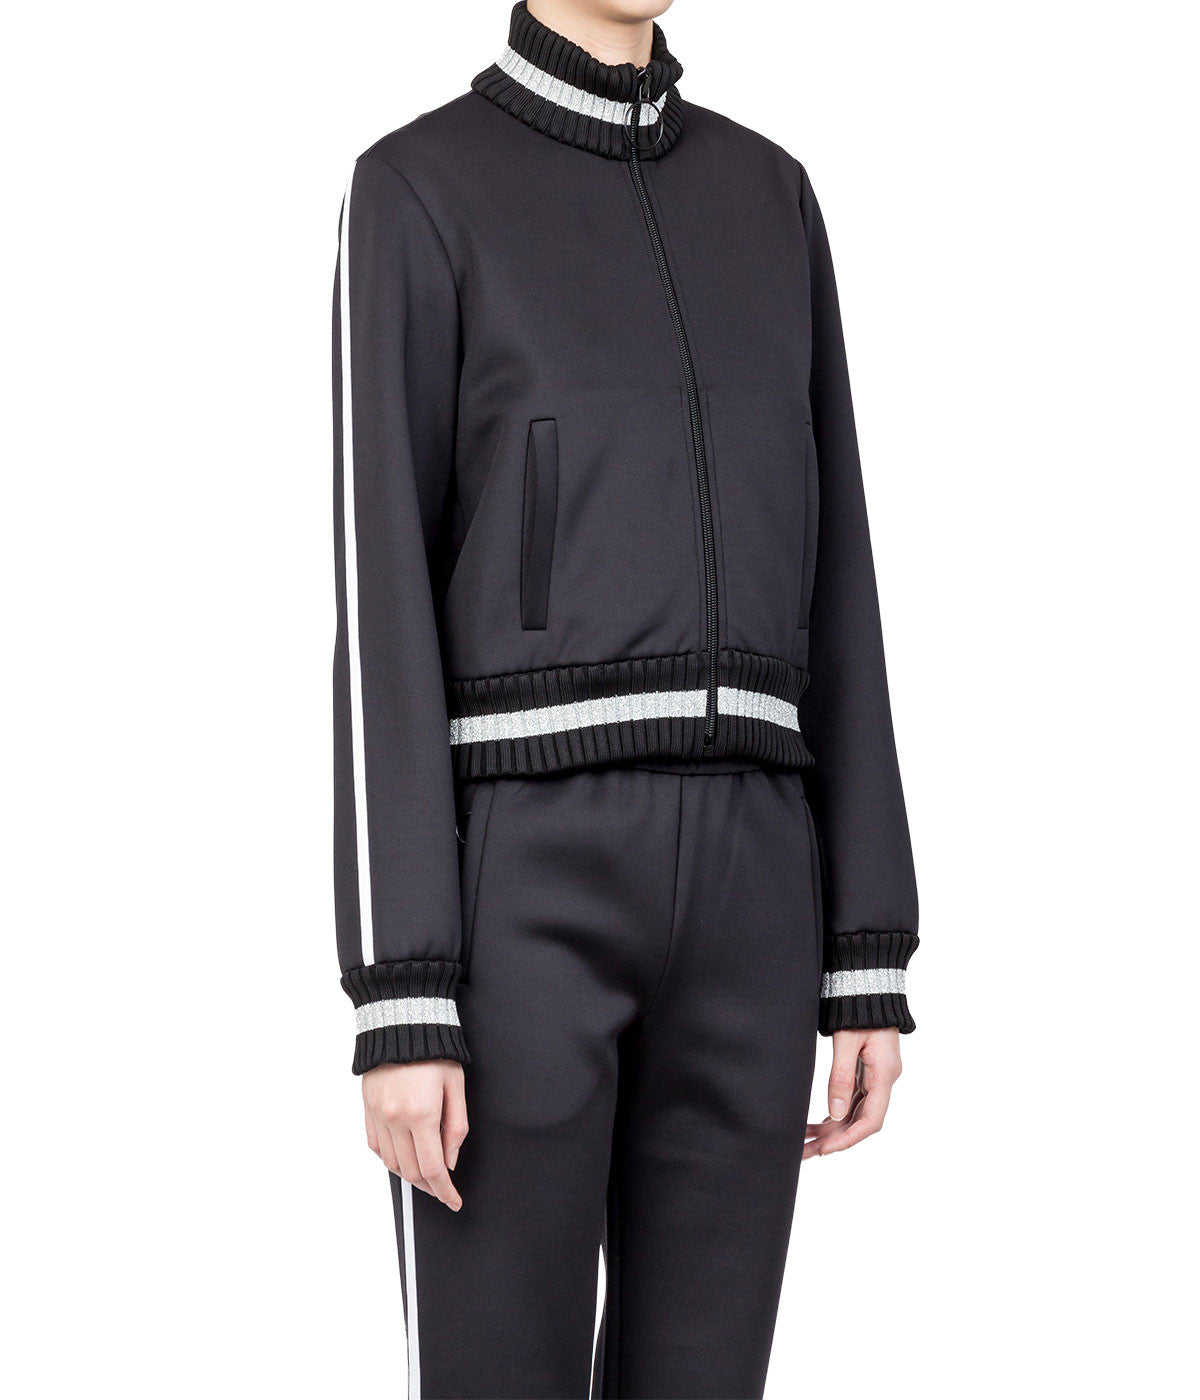 Black Two-Piece Track Suit